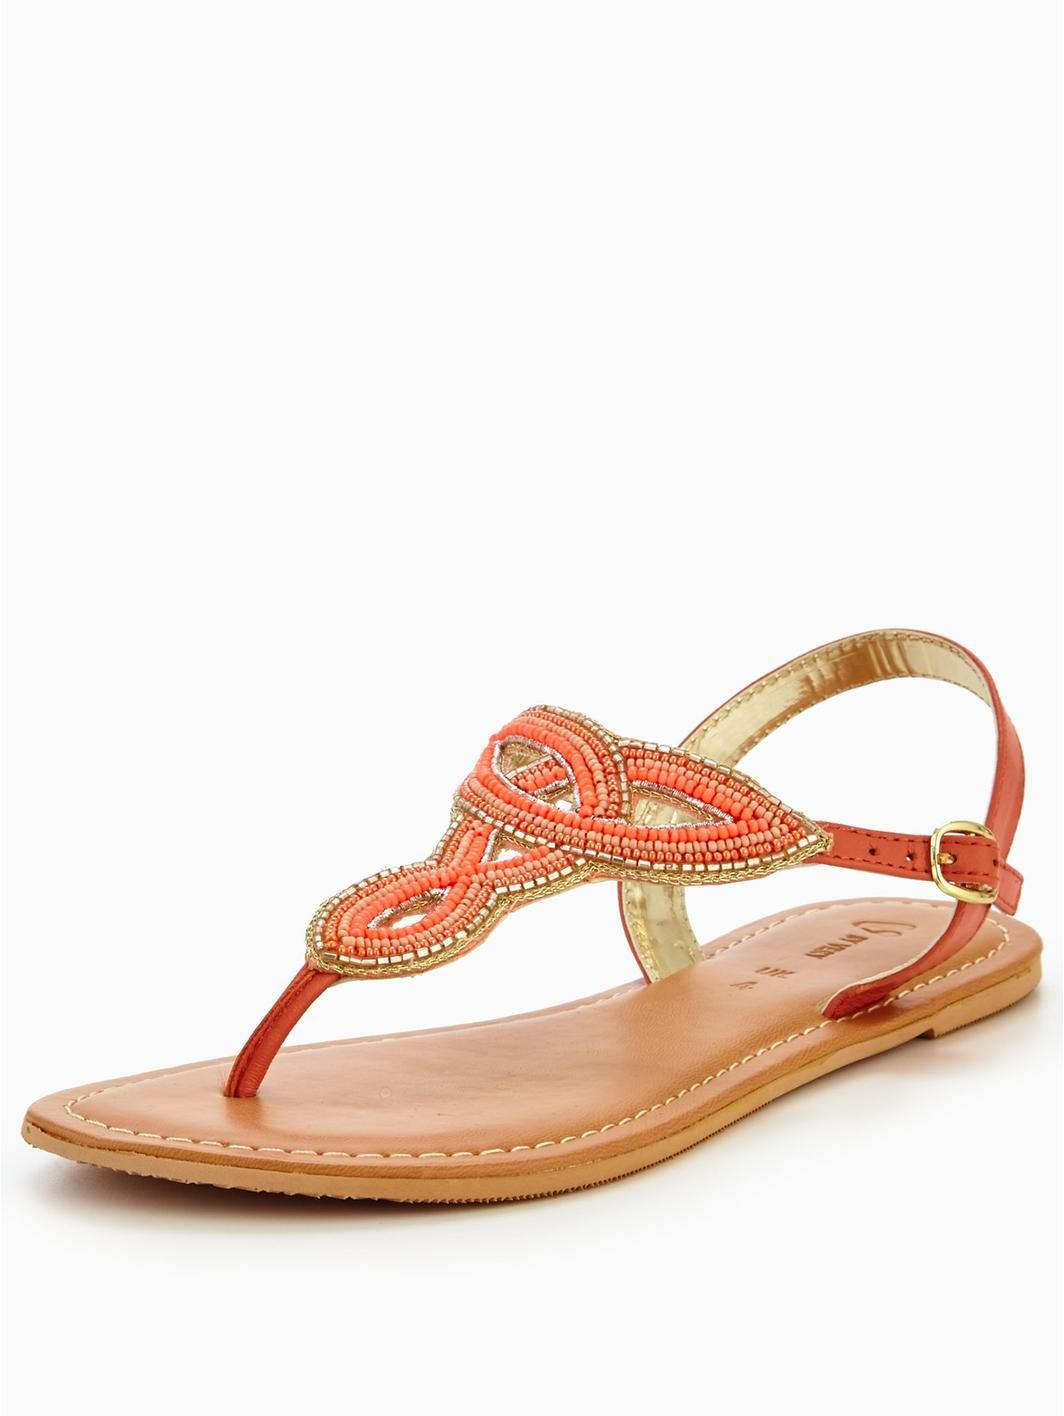 V by Very Melody Embellished Toepost Sandal - Coral, http://www.very.co.uk/v-by-very-melody-embellished-toepost-sandal-coral/1600134606.prd